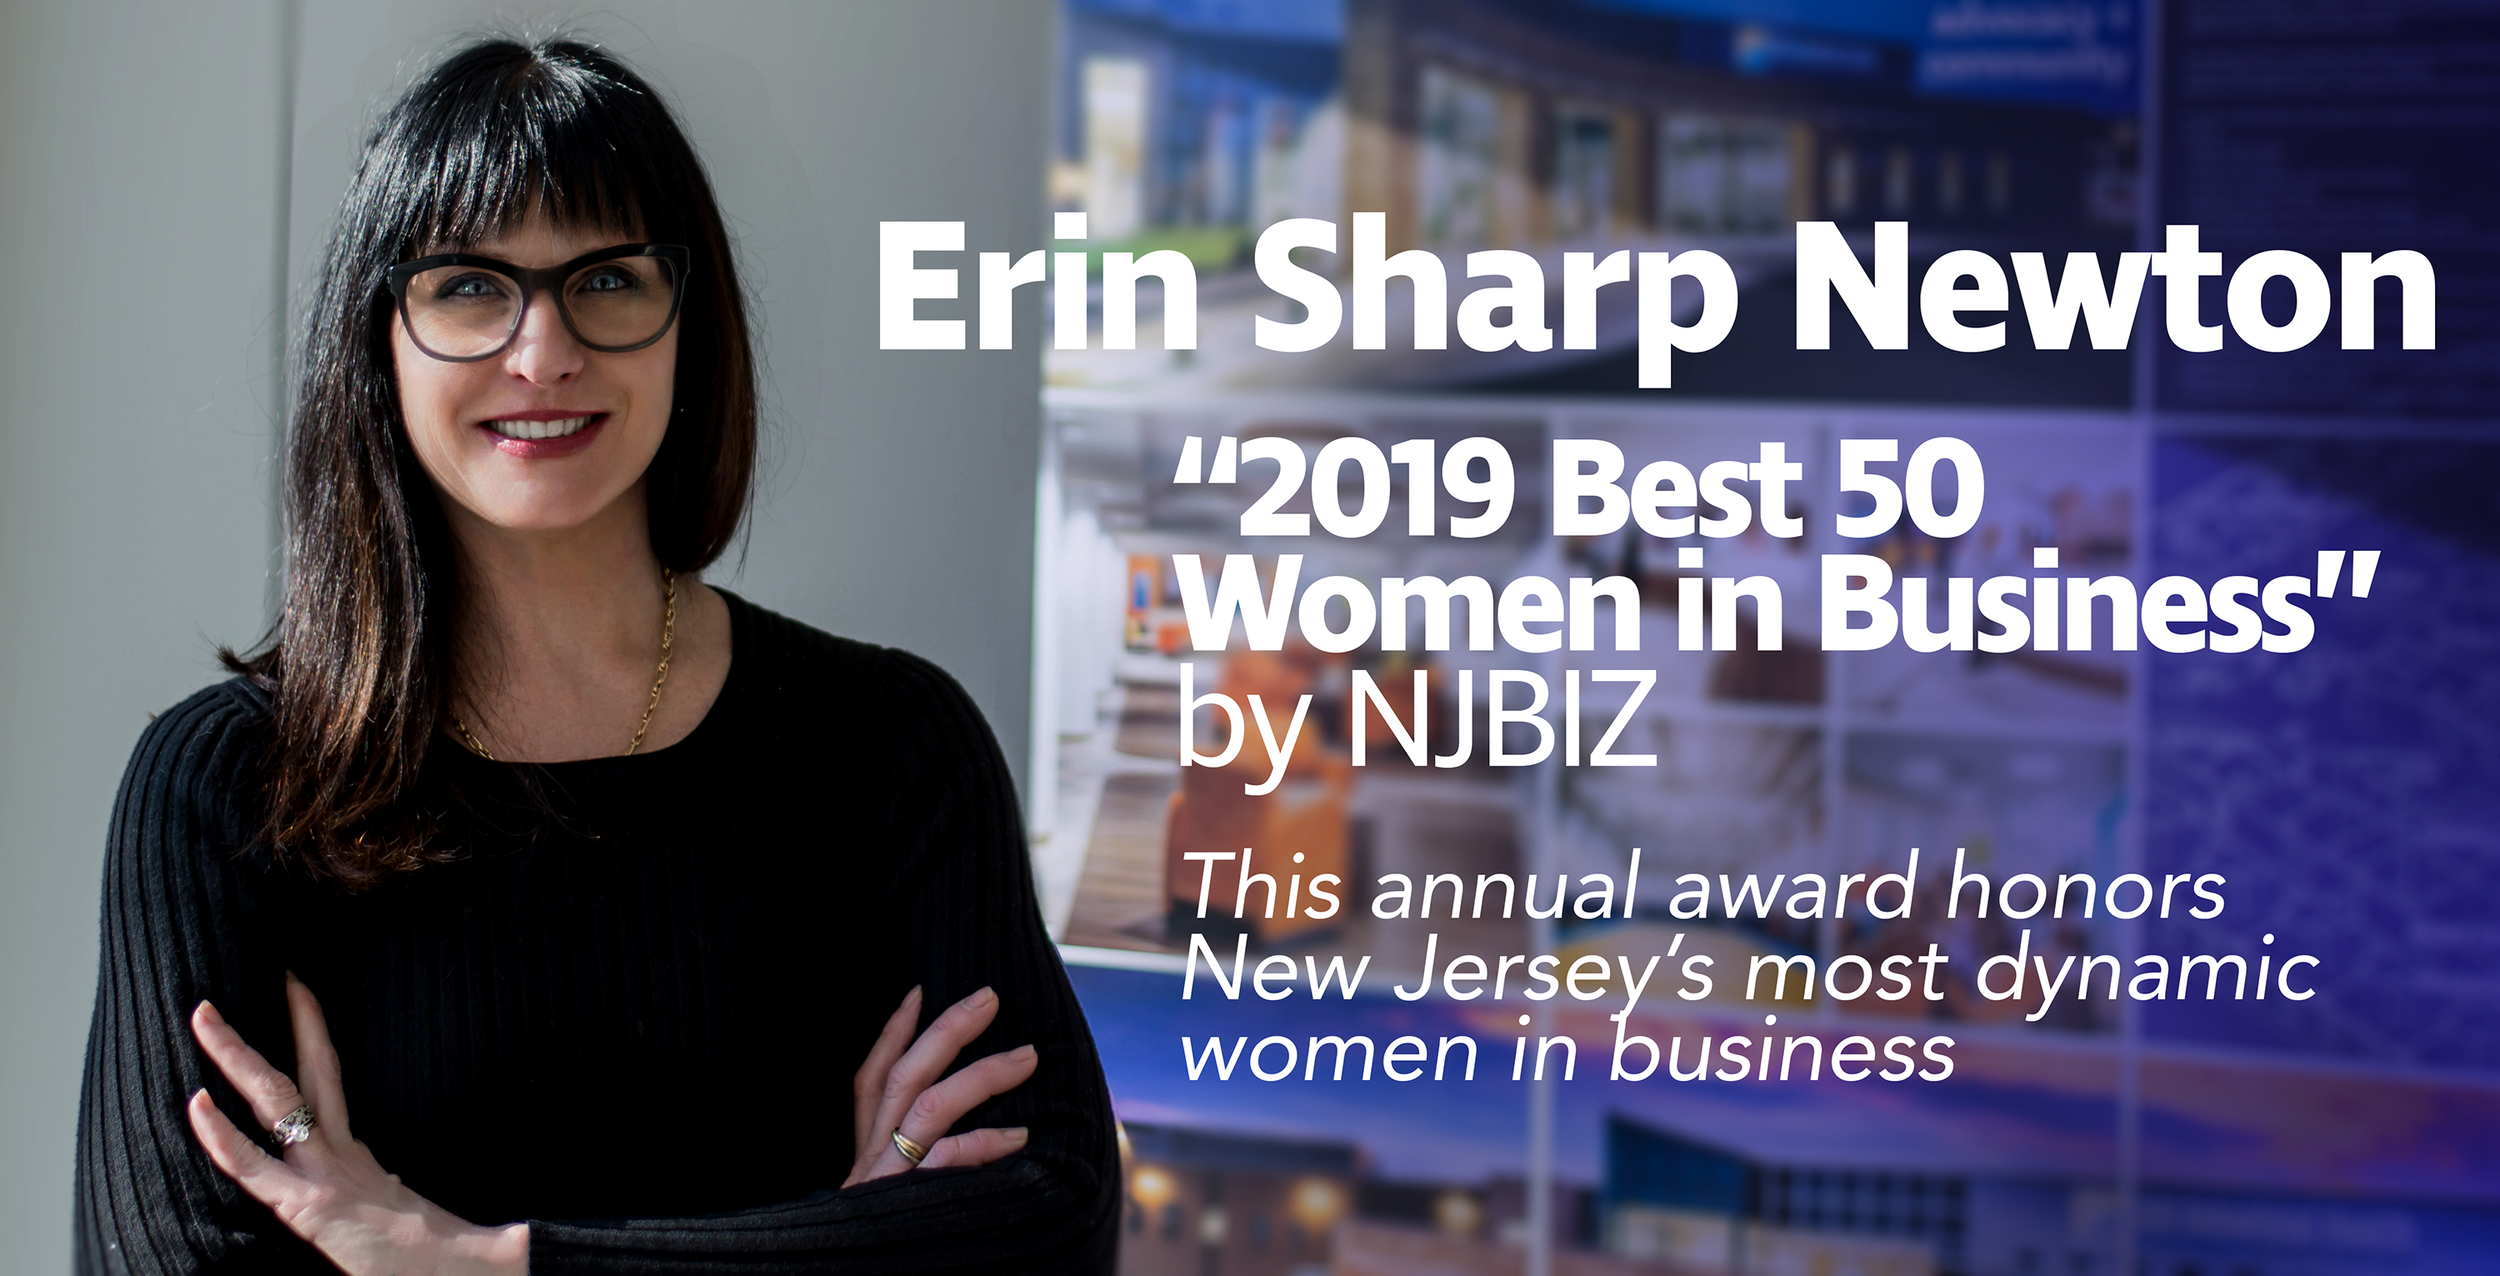 Erin Sharp Newton named one of 2019's Best 50 Women in Business by NJBIZ